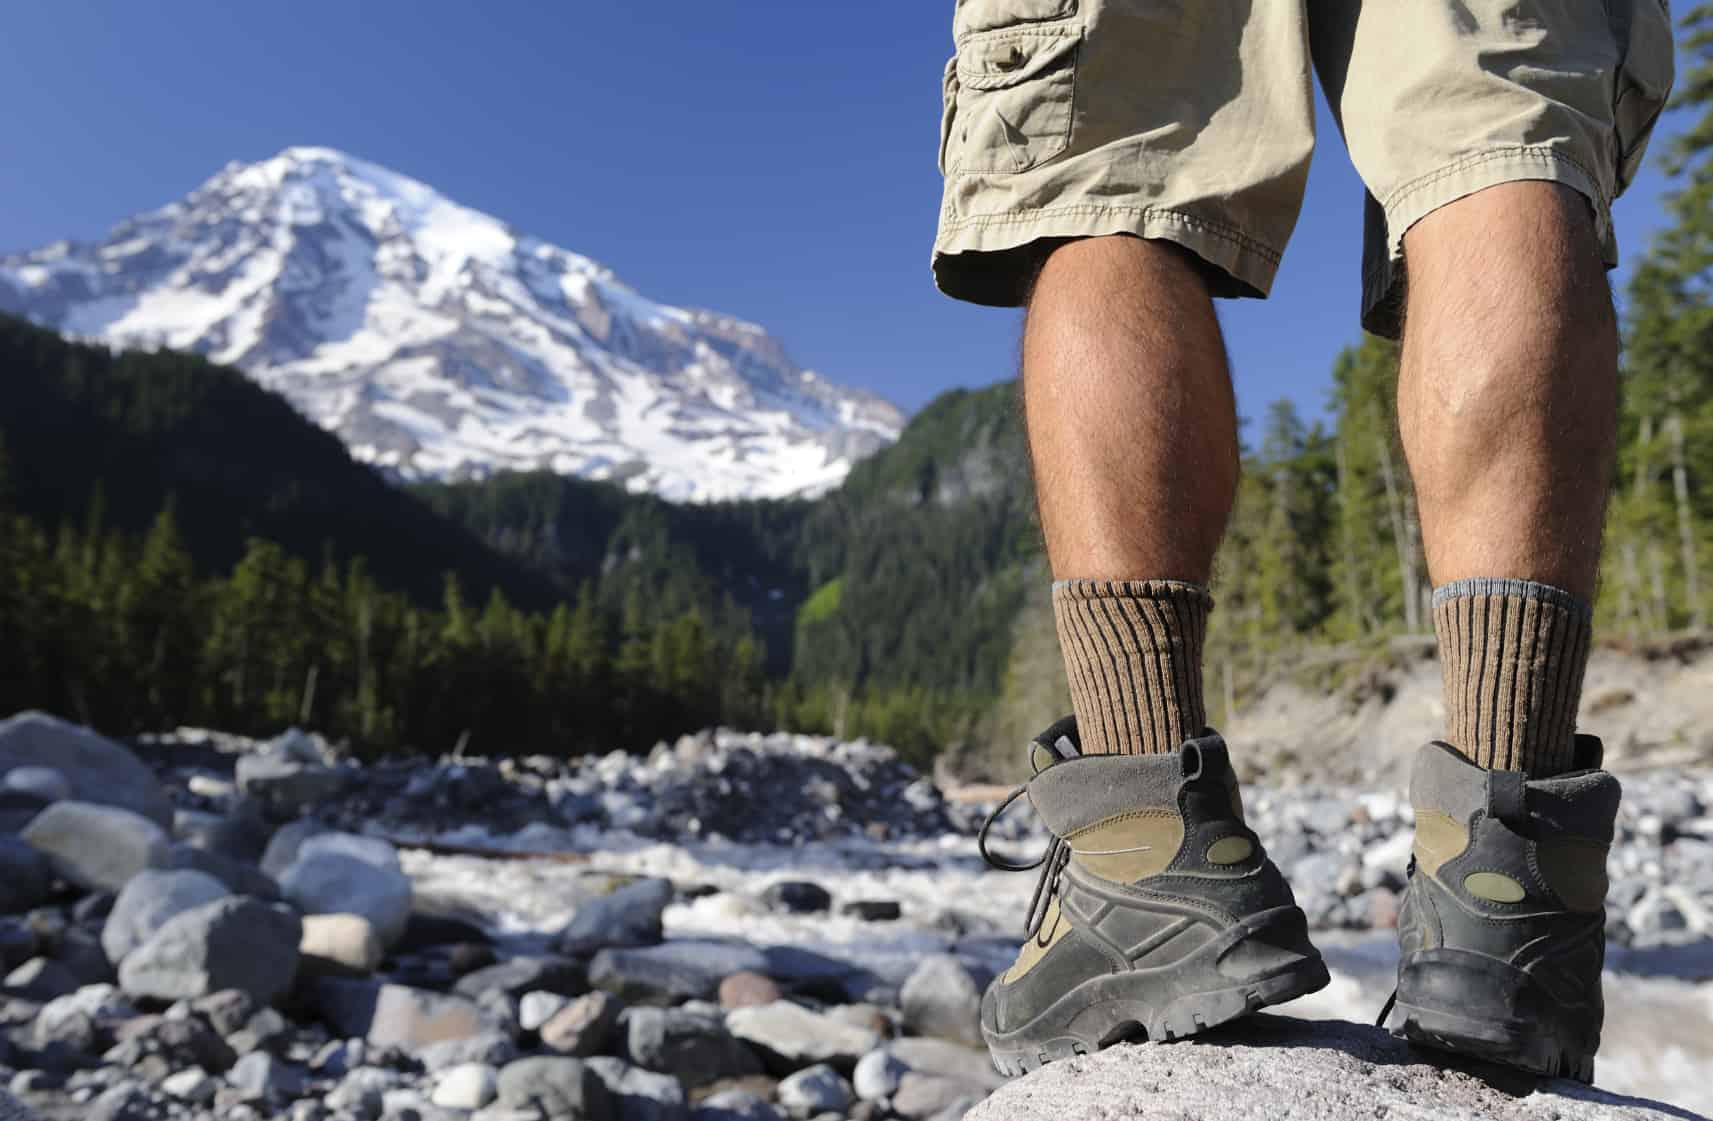 An iamge of a hiker standing by a river with Mount Rainier in the background